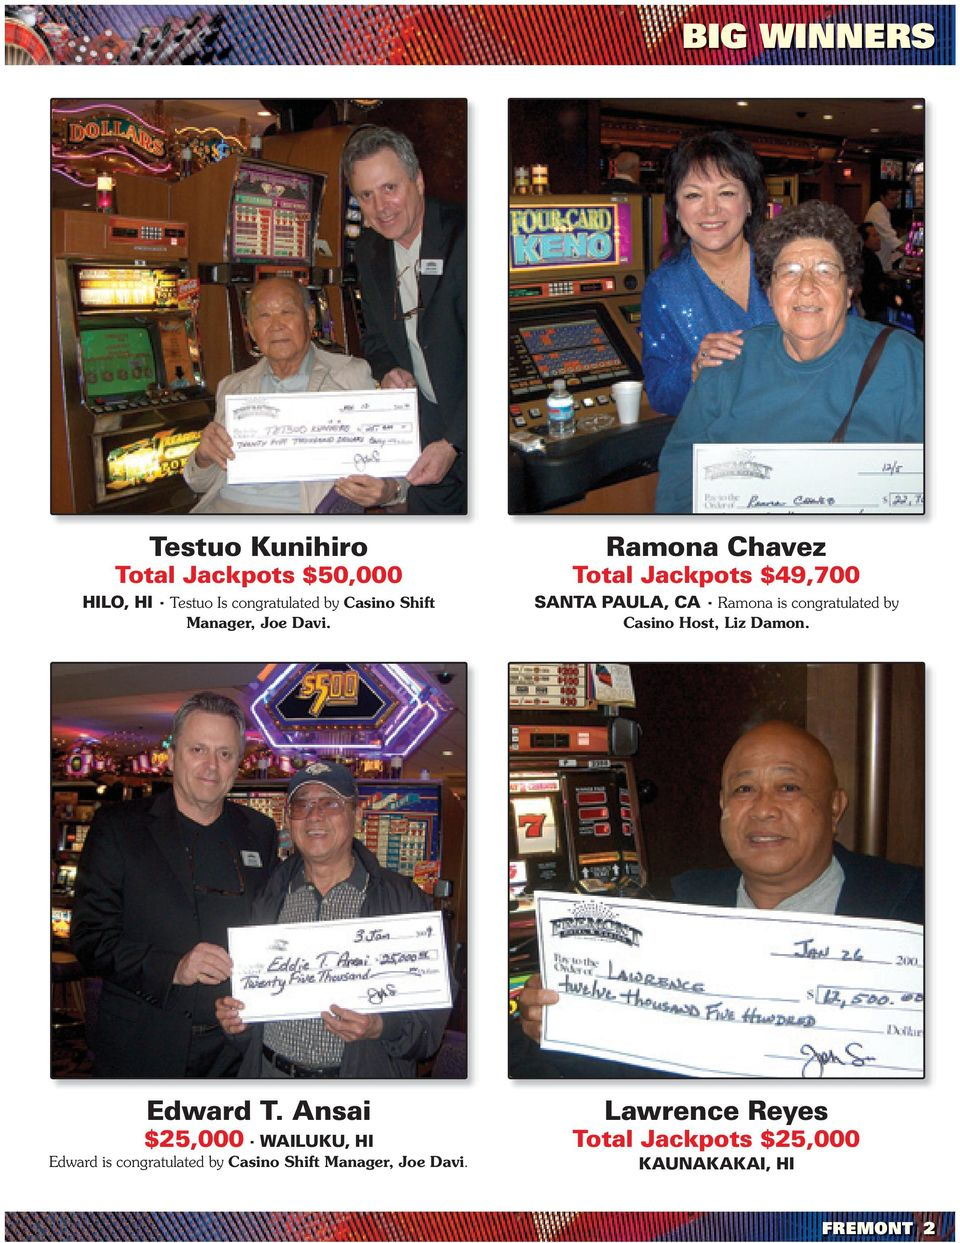 Ramona Chavez Total Jackpots $49,700 SANTA PAULA, CA Ramona is congratulated by Casino Host,